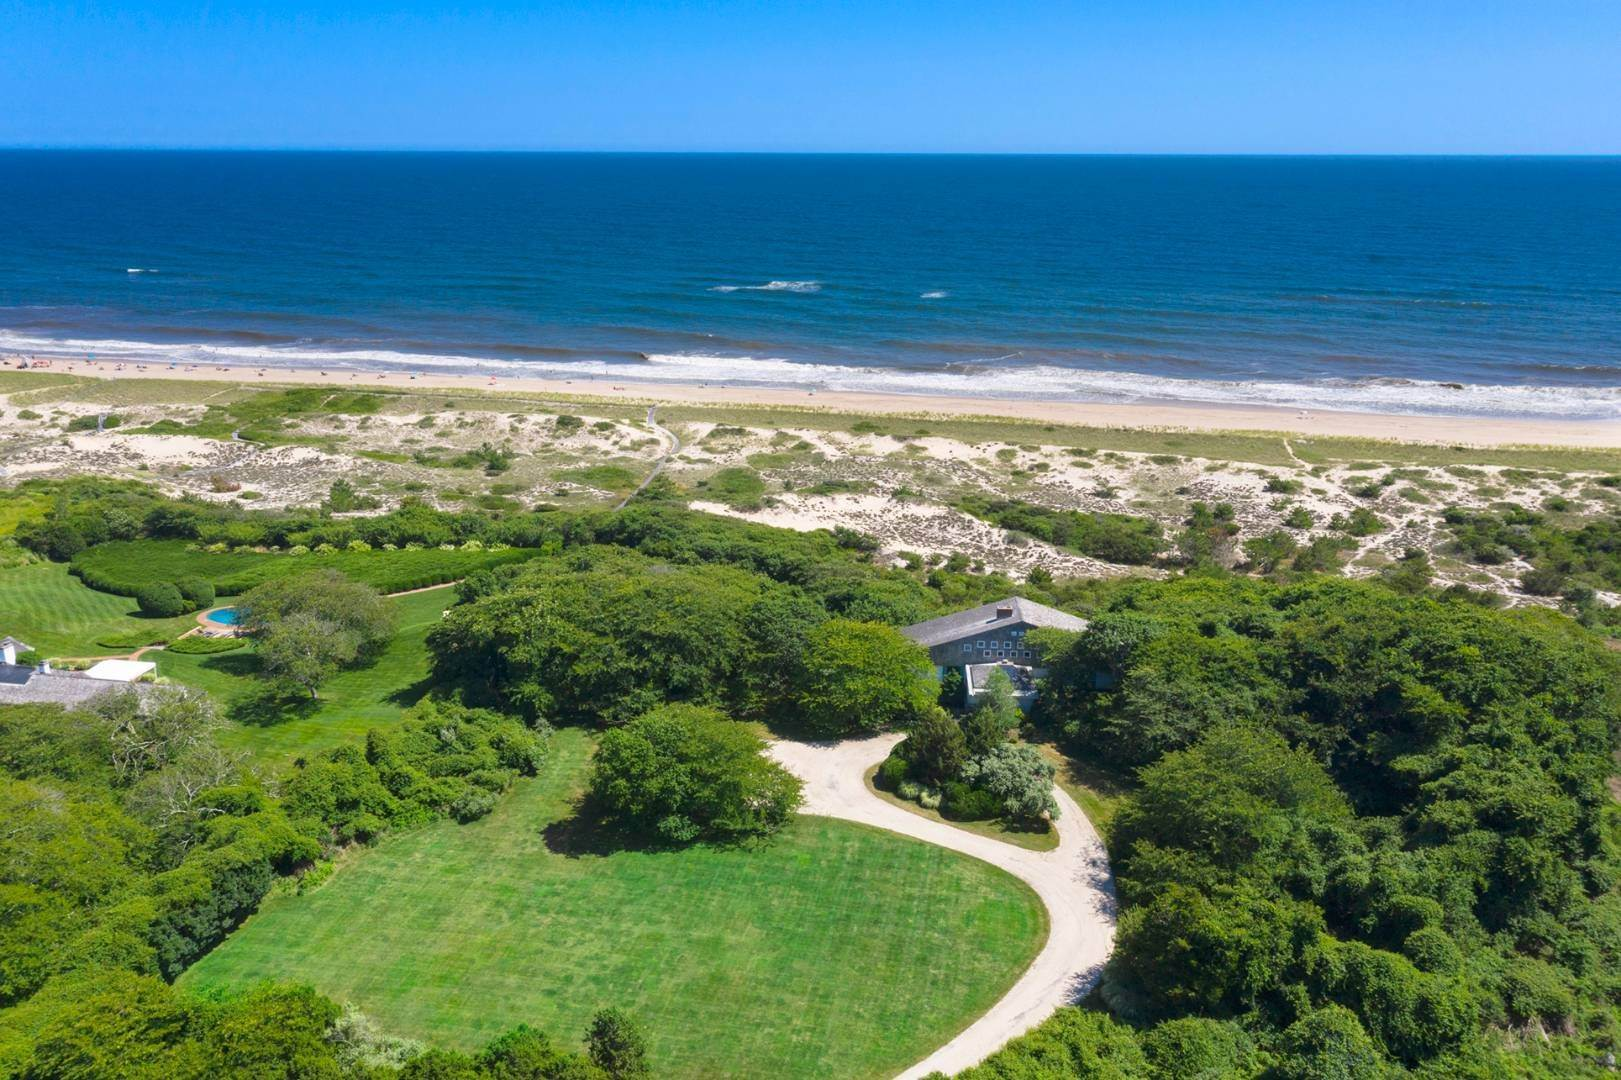 Single Family Home for Sale at Otto Spaeth House, East Hampton Village 30 Spaeth Ln, East Hampton, NY 11937